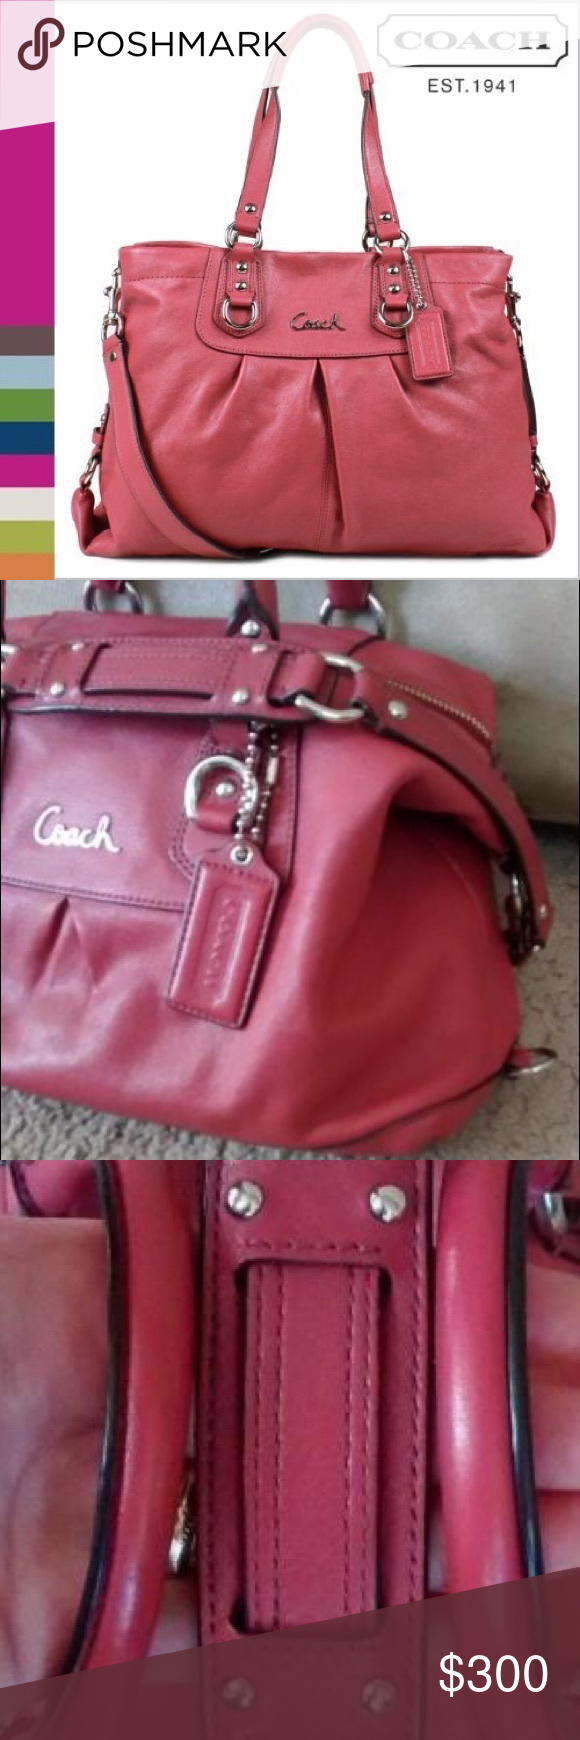 Authentic Coach Ashley Carryall Authentic Coach Ginger Beet Ashley Carryall. Retail price is $398 before tax. This bag is in excellent condition! I have only used it once or twice & it is from a smoke free home. Stored away from damage. Bag has handles, additional detachable shoulder strap, 3 compartments and a zipper pouch inside. Amazing color & quality as always from Coach! Coach Bags Satchels